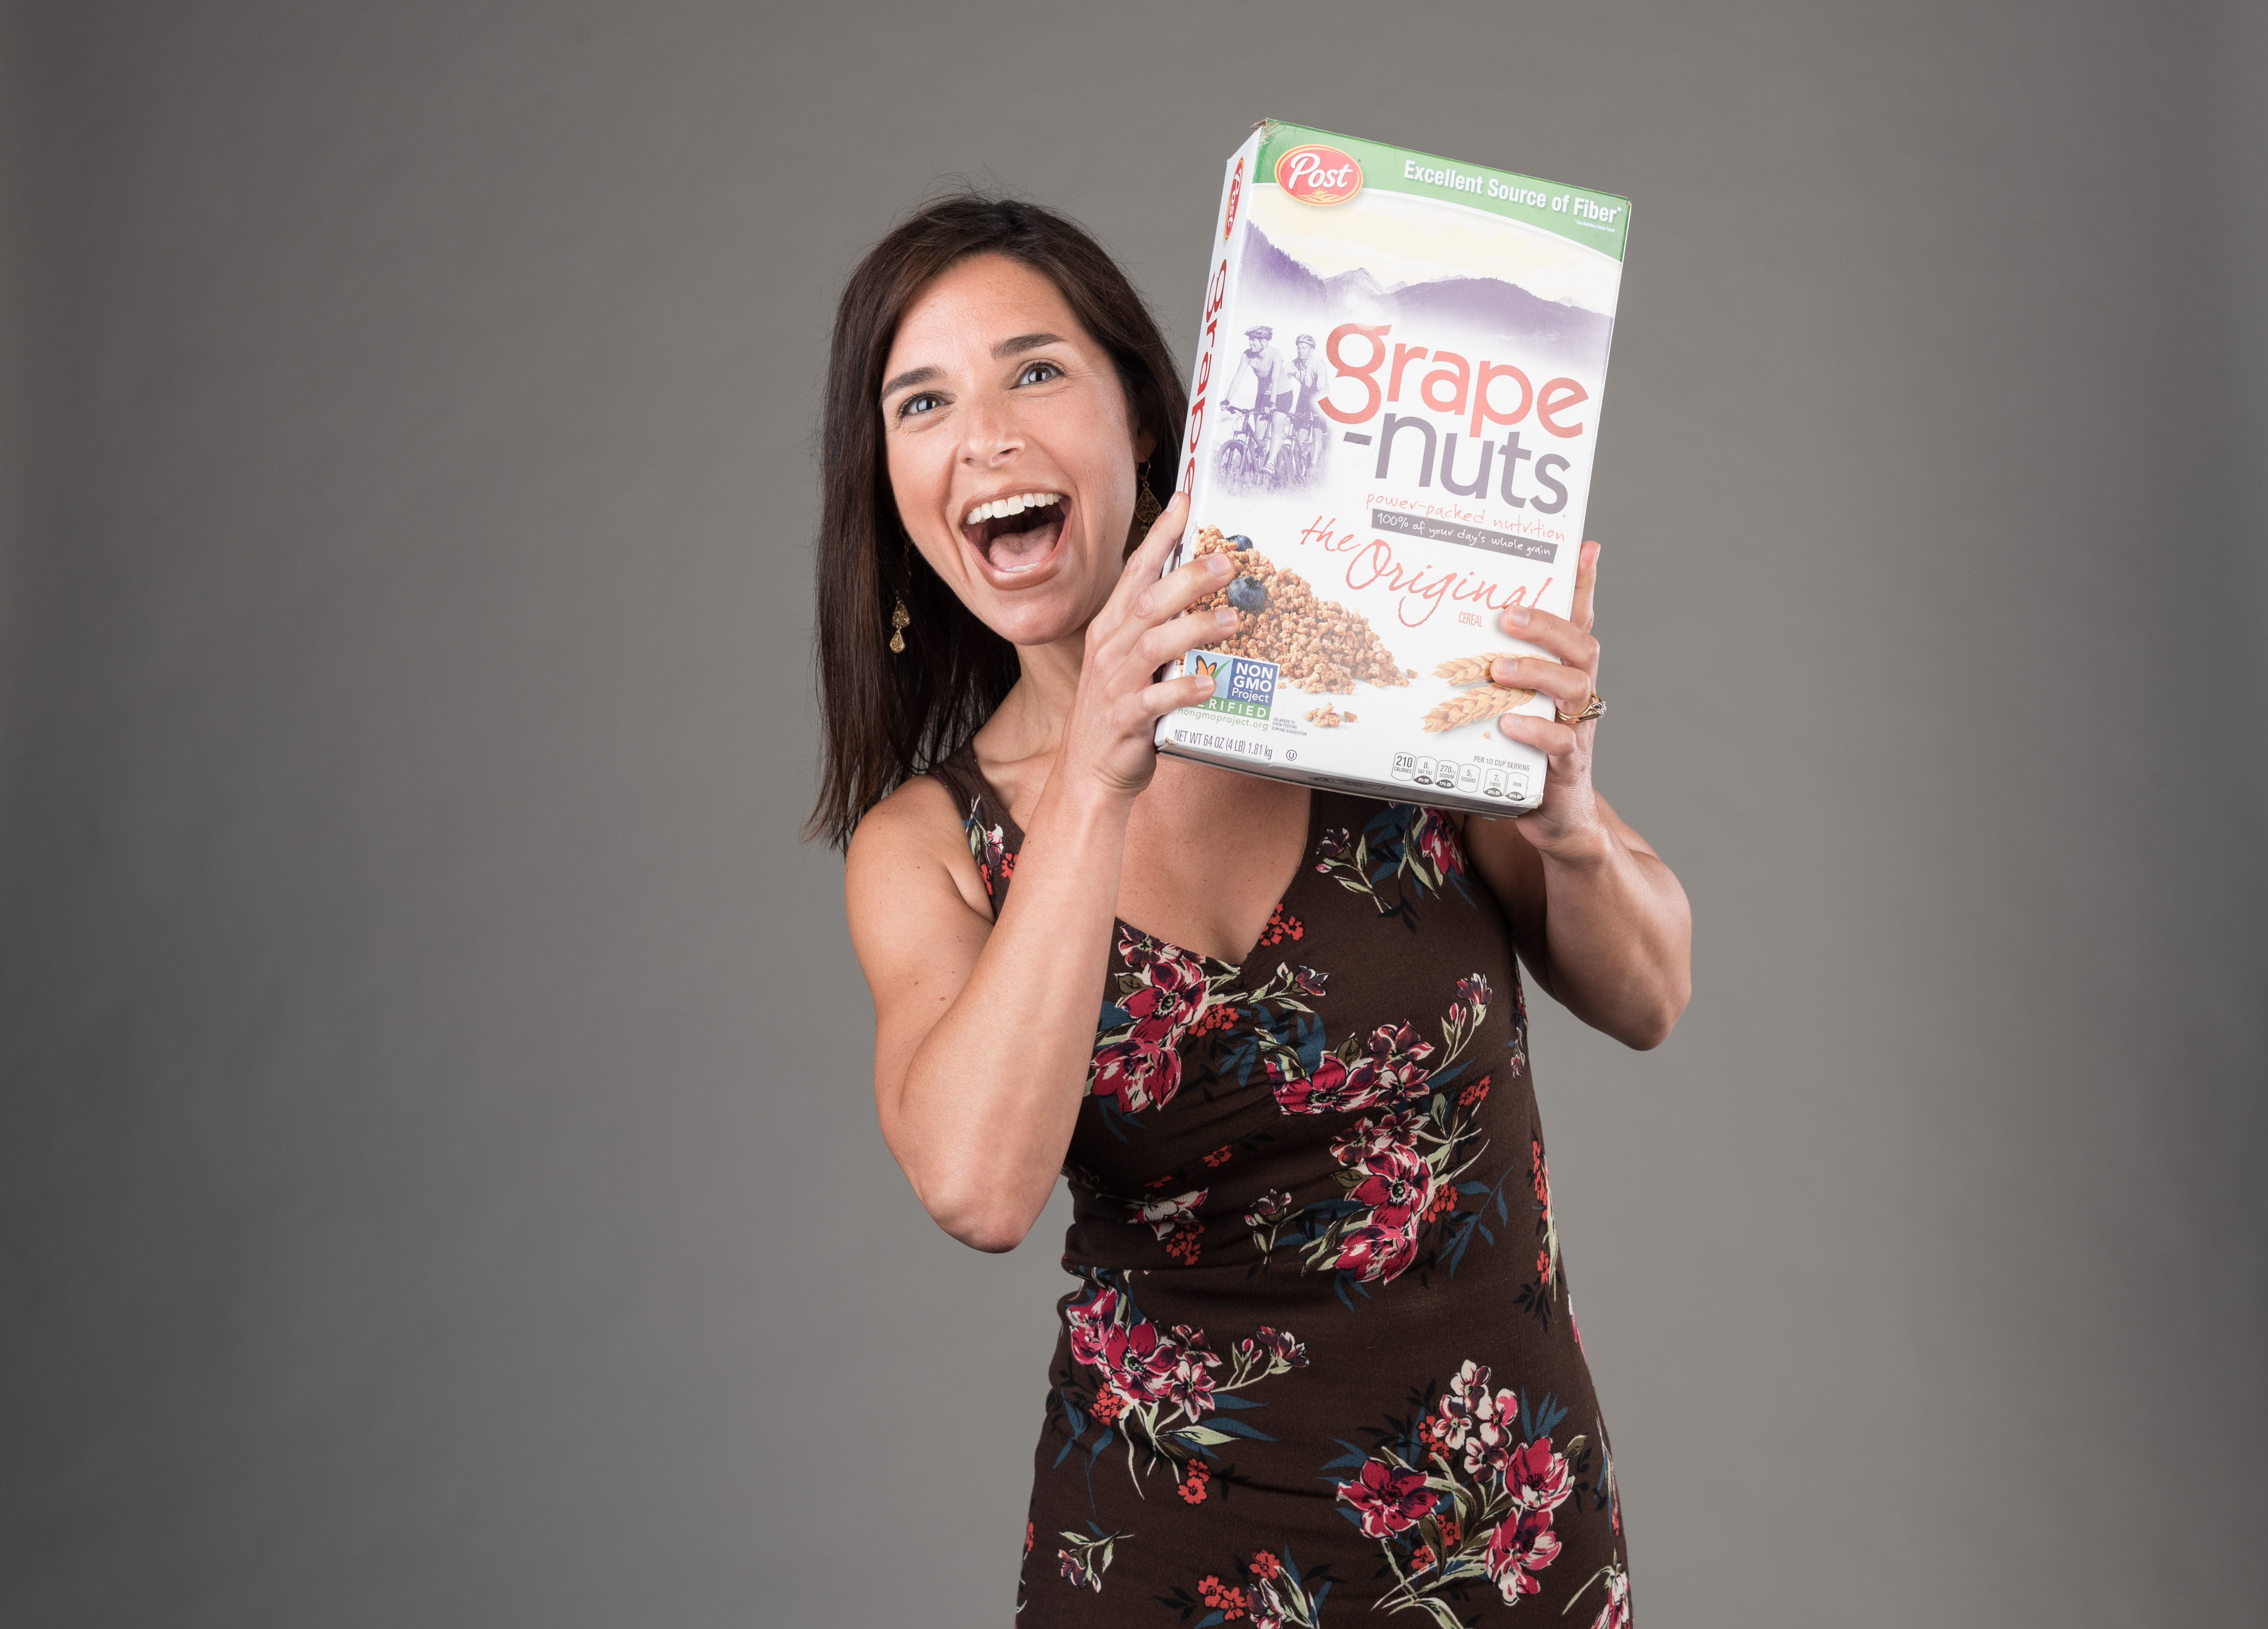 Portrait of woman holding cereal box